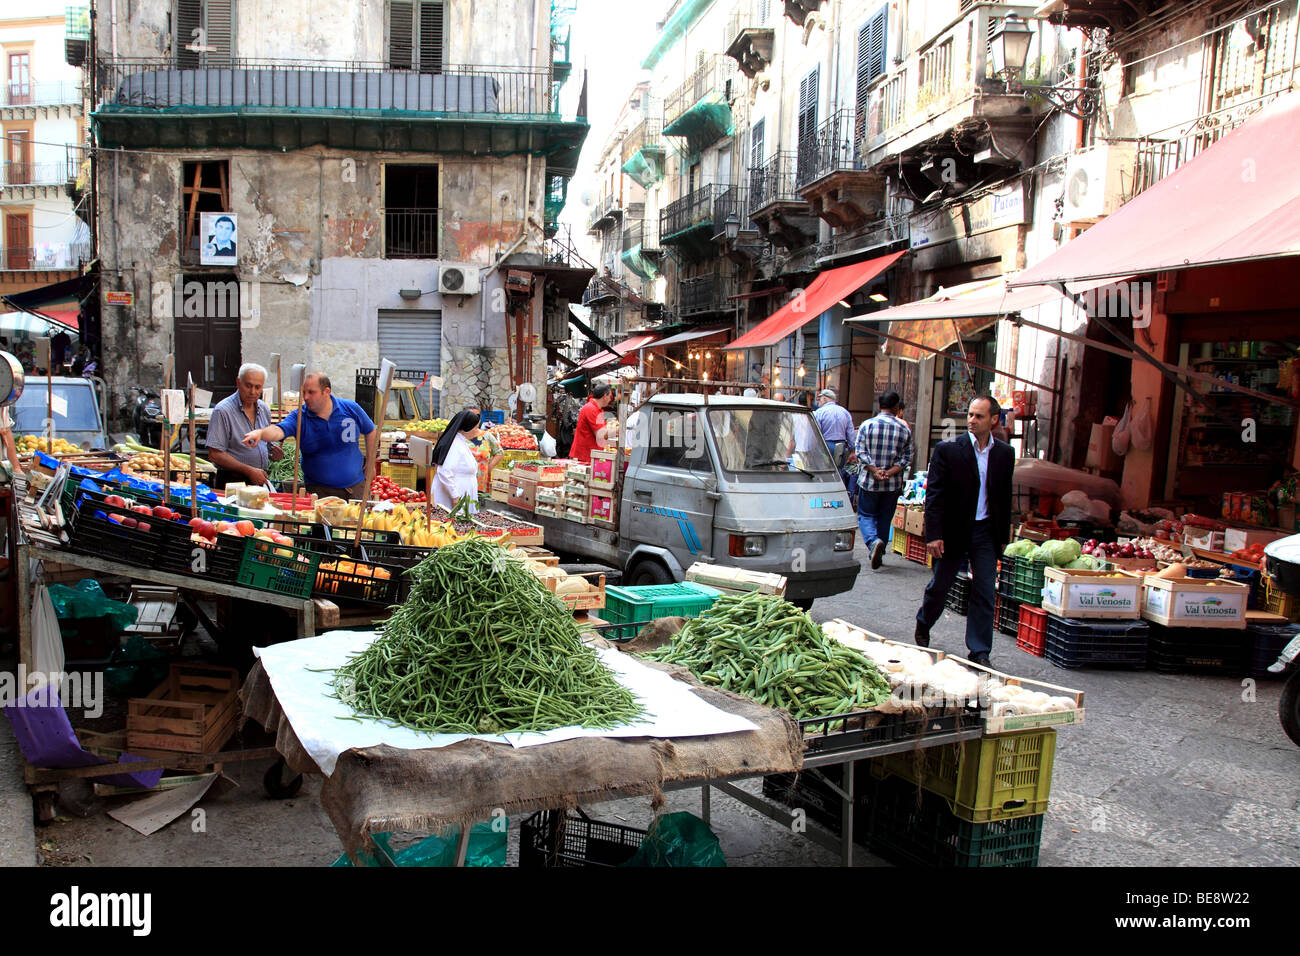 The Capo market in Palermo Sicily Italy - Stock Image